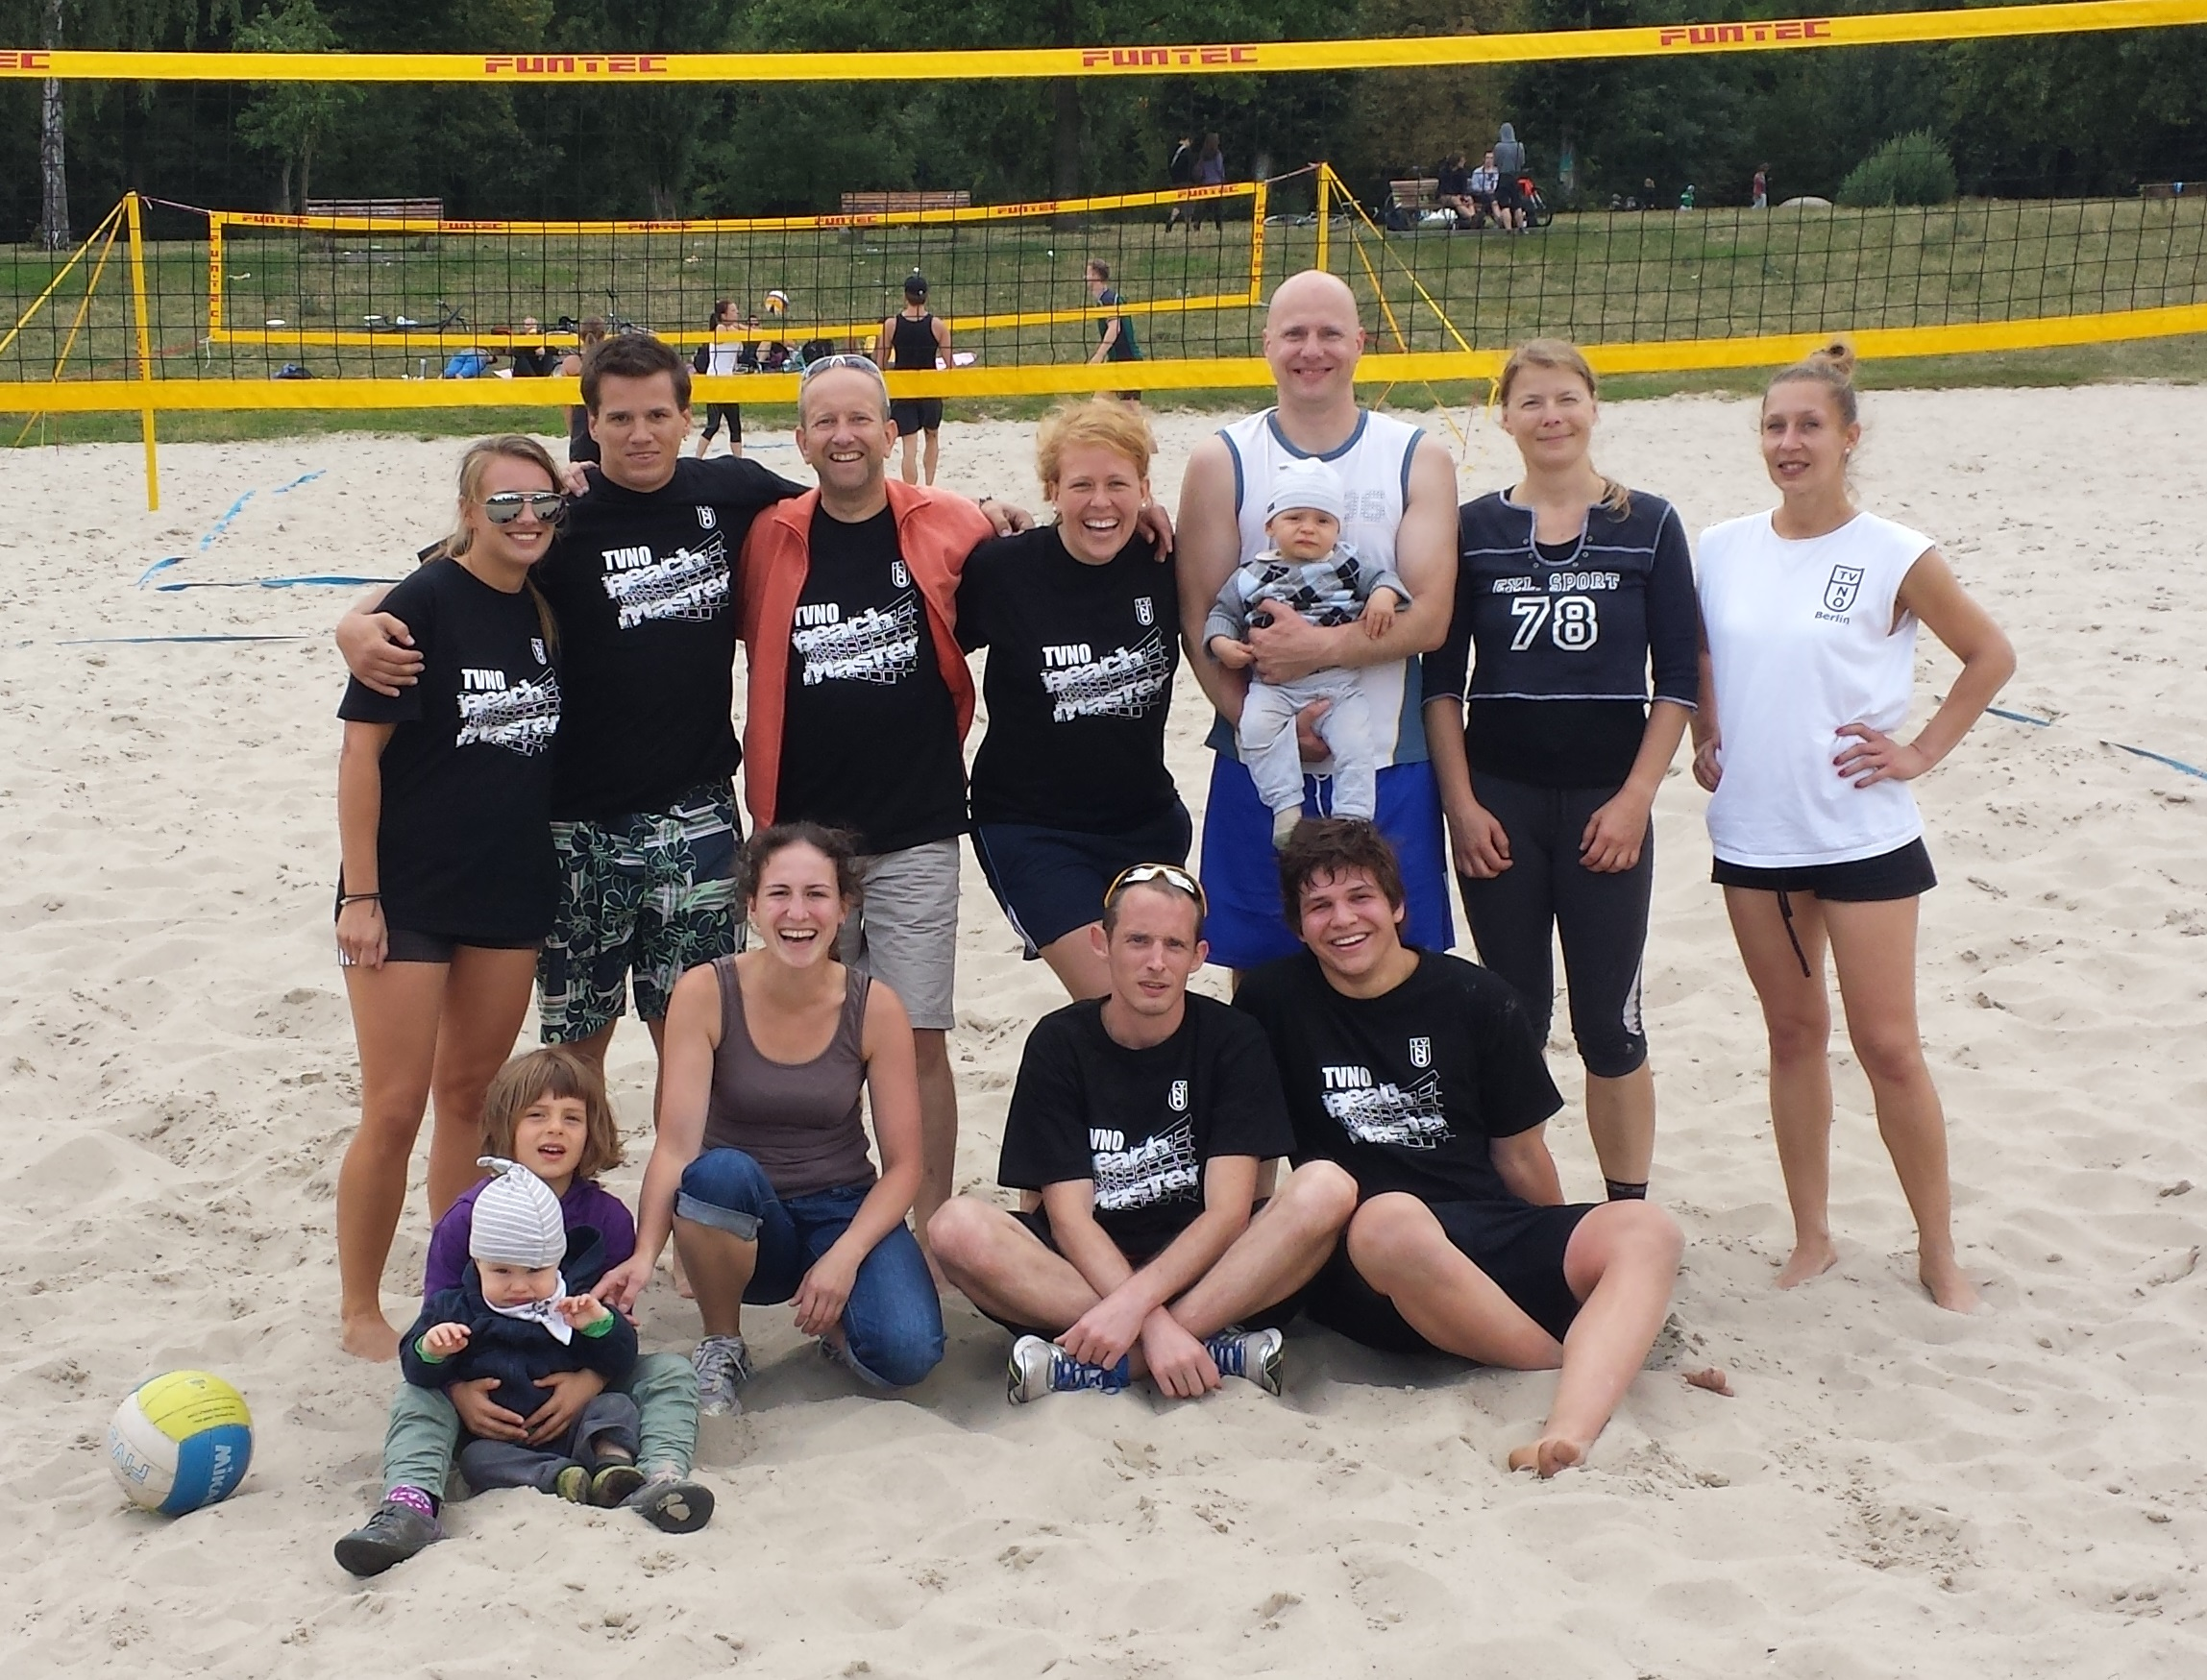 TVNO Mixed Volleyball Beachmaster